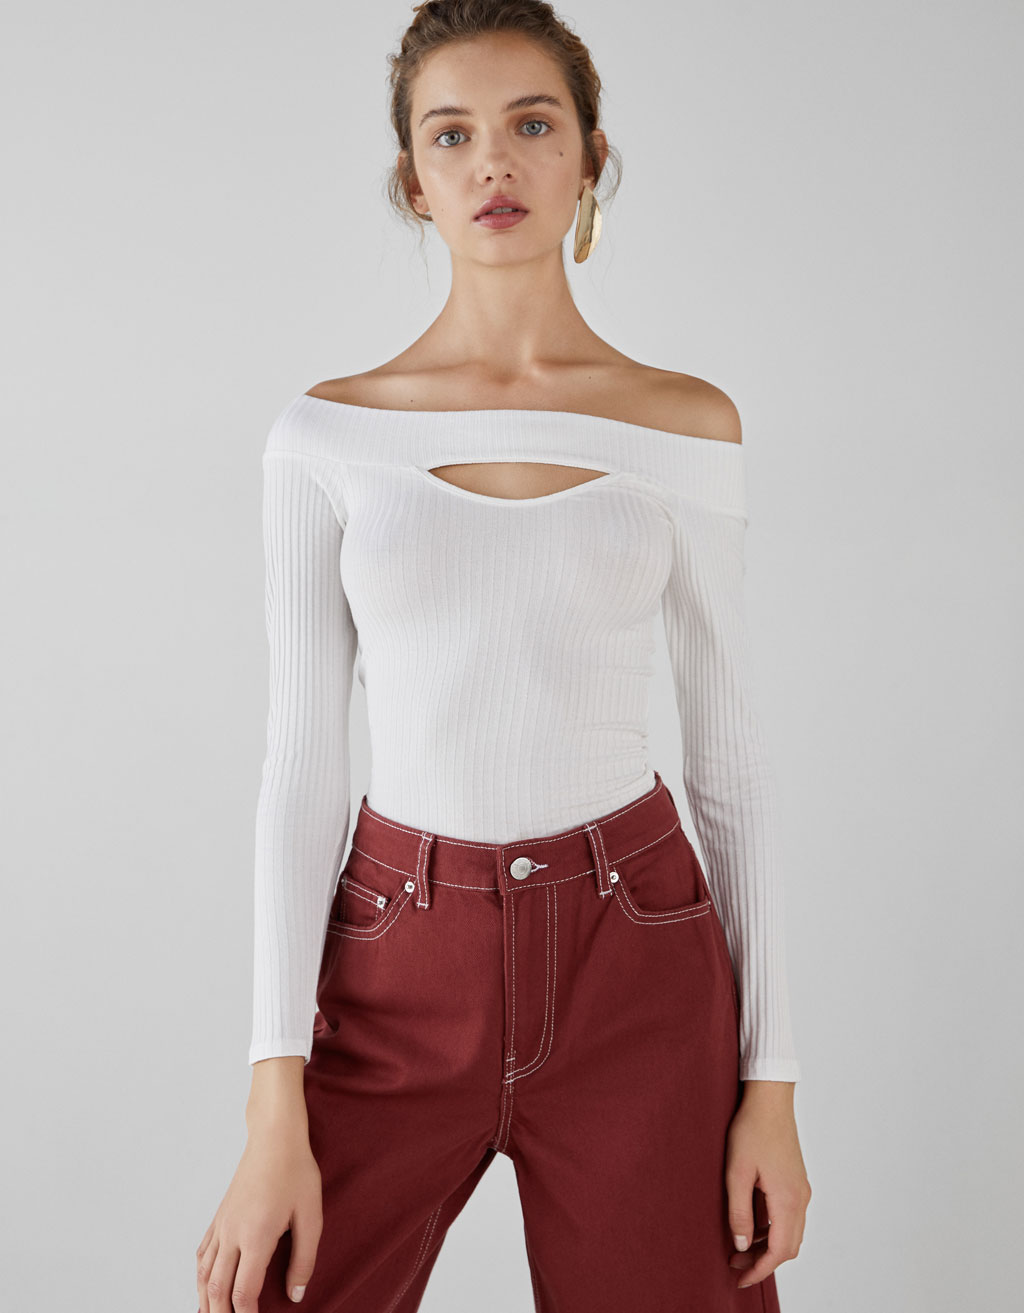 Long sleeve off-the-shoulder top